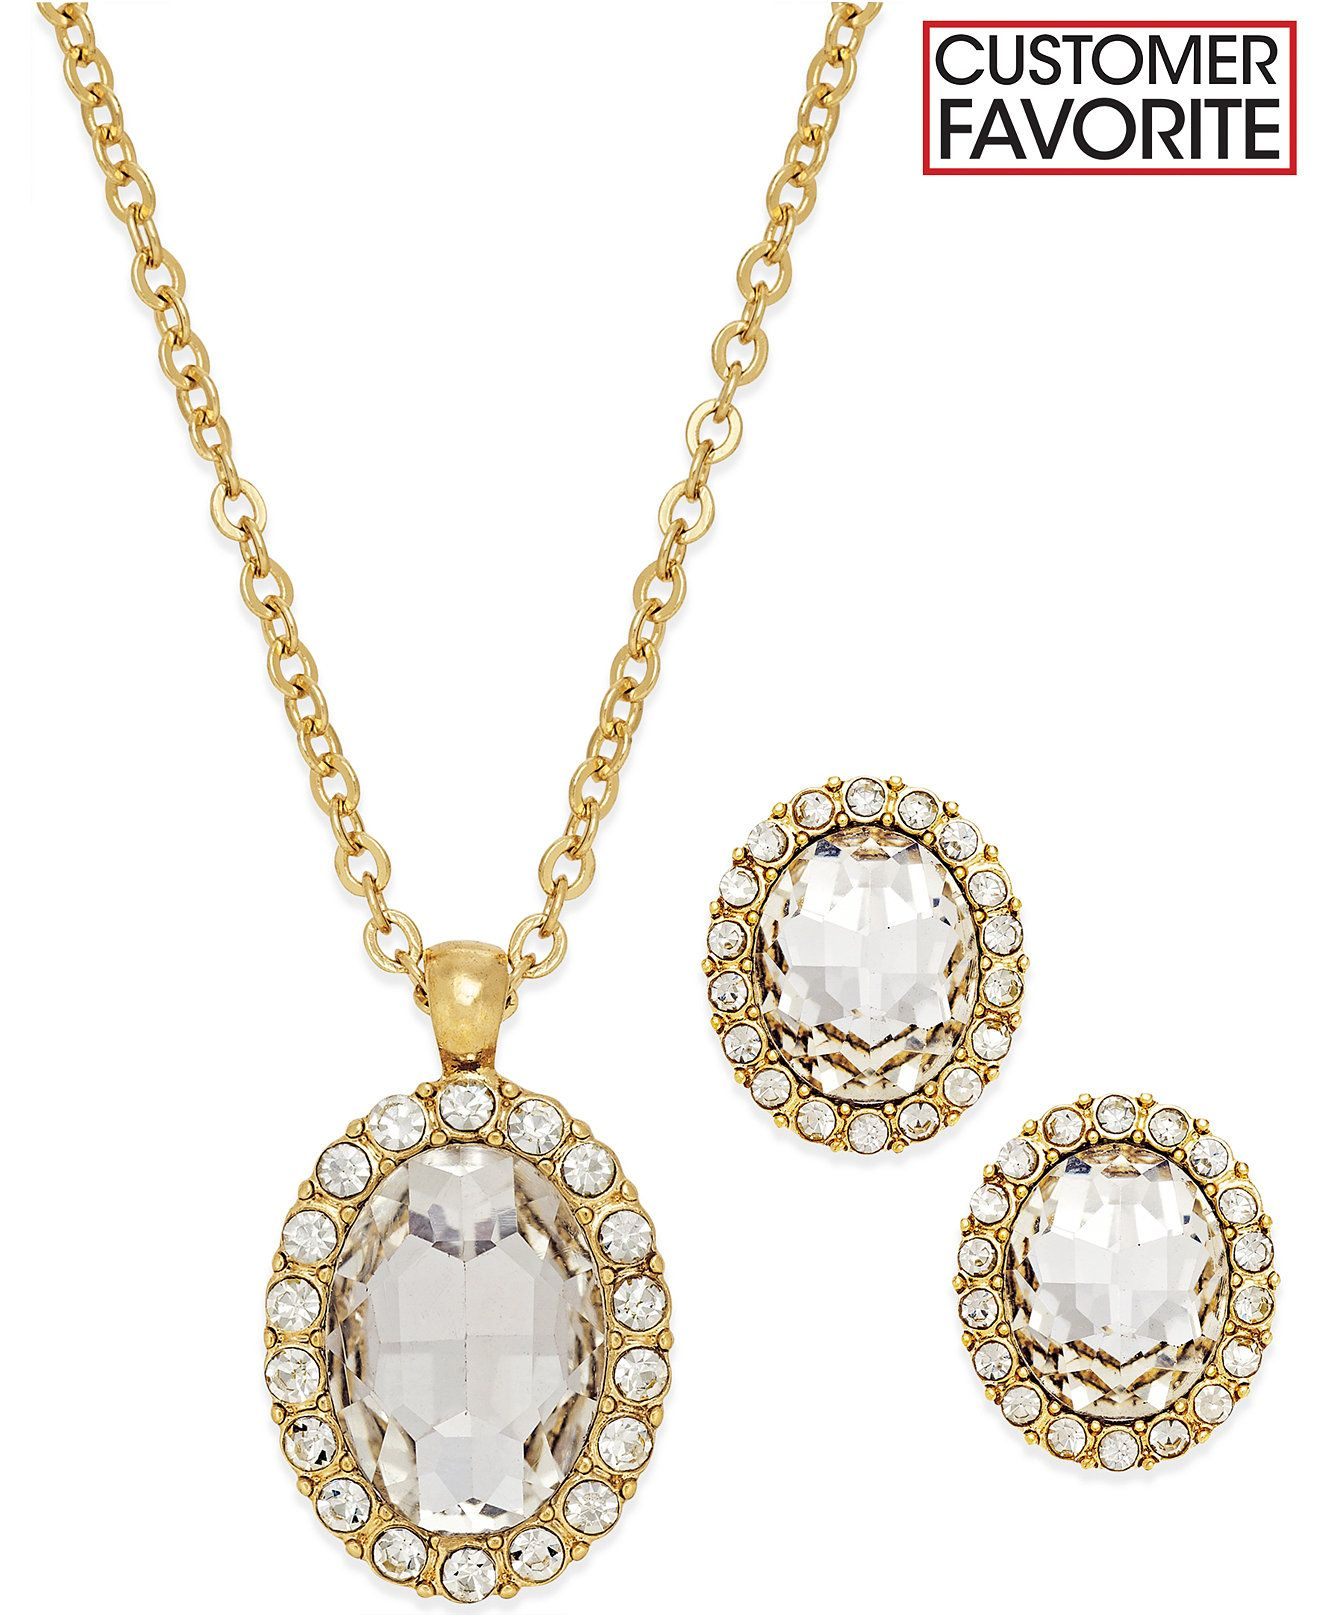 Charter club goldtone oval earring and necklace boxed set jewelry